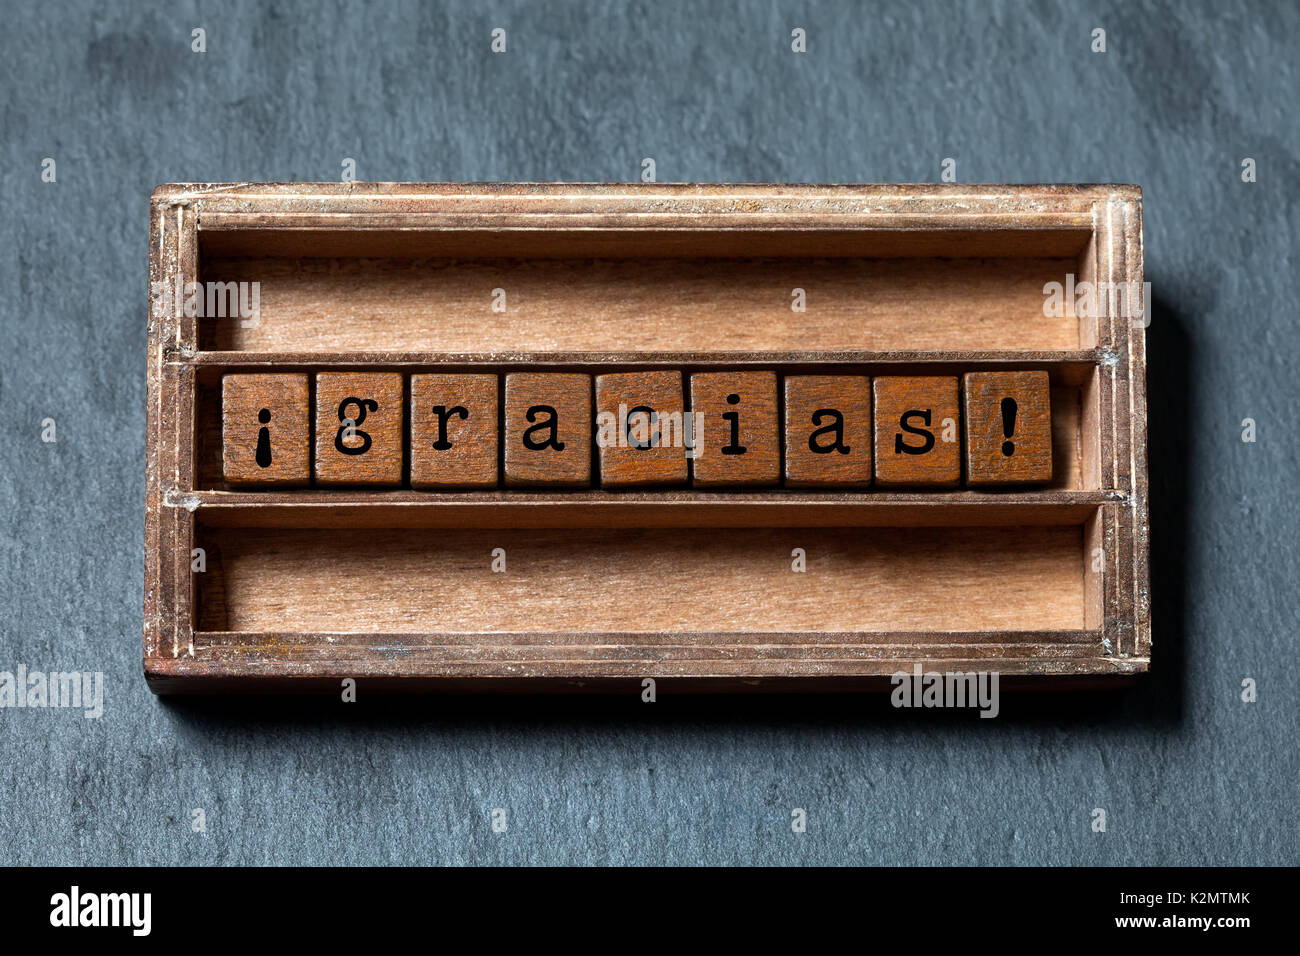 Gracias. Thank you in Spanish translation. Vintage box, wooden cubes phrase with old style letters. Gray stone textured background. Close-up, up view, soft focus. - Stock Image